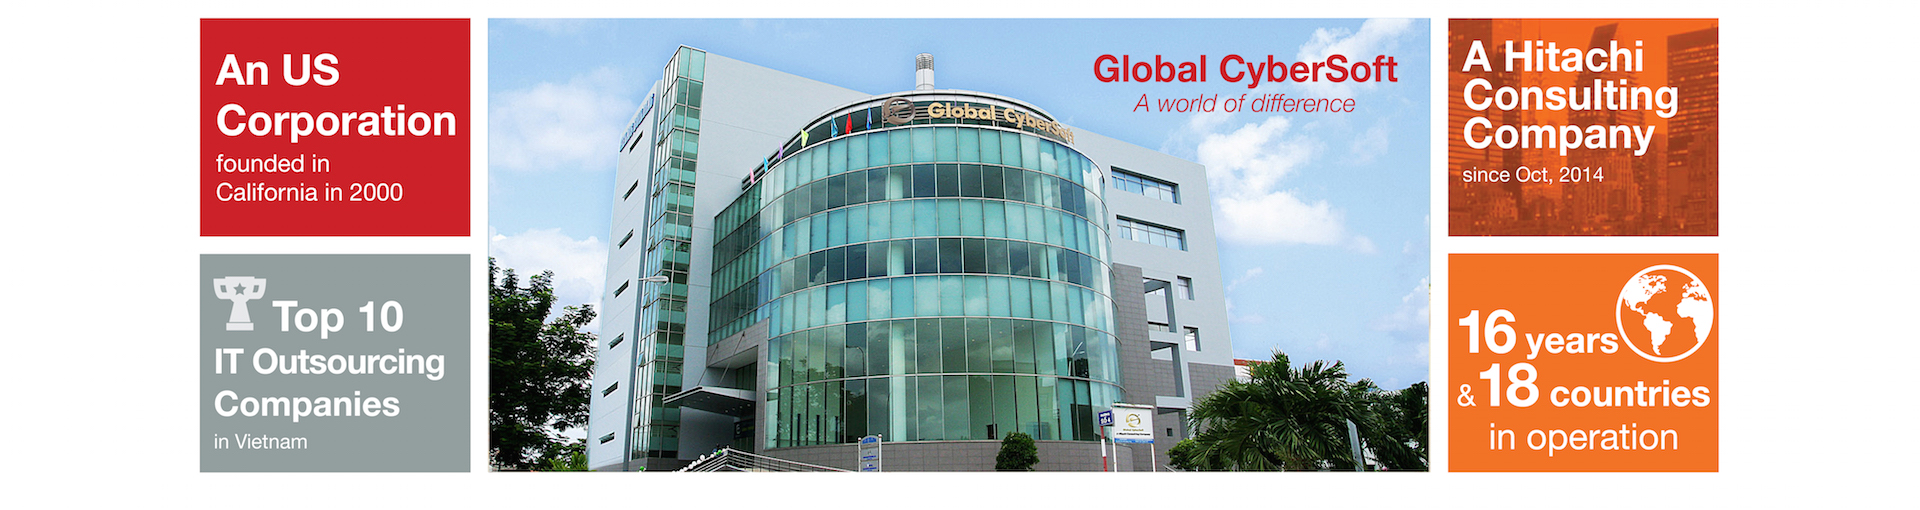 GLOBAL CYBERSOFT (VIETNAM) JSC Profile | TopITWorks